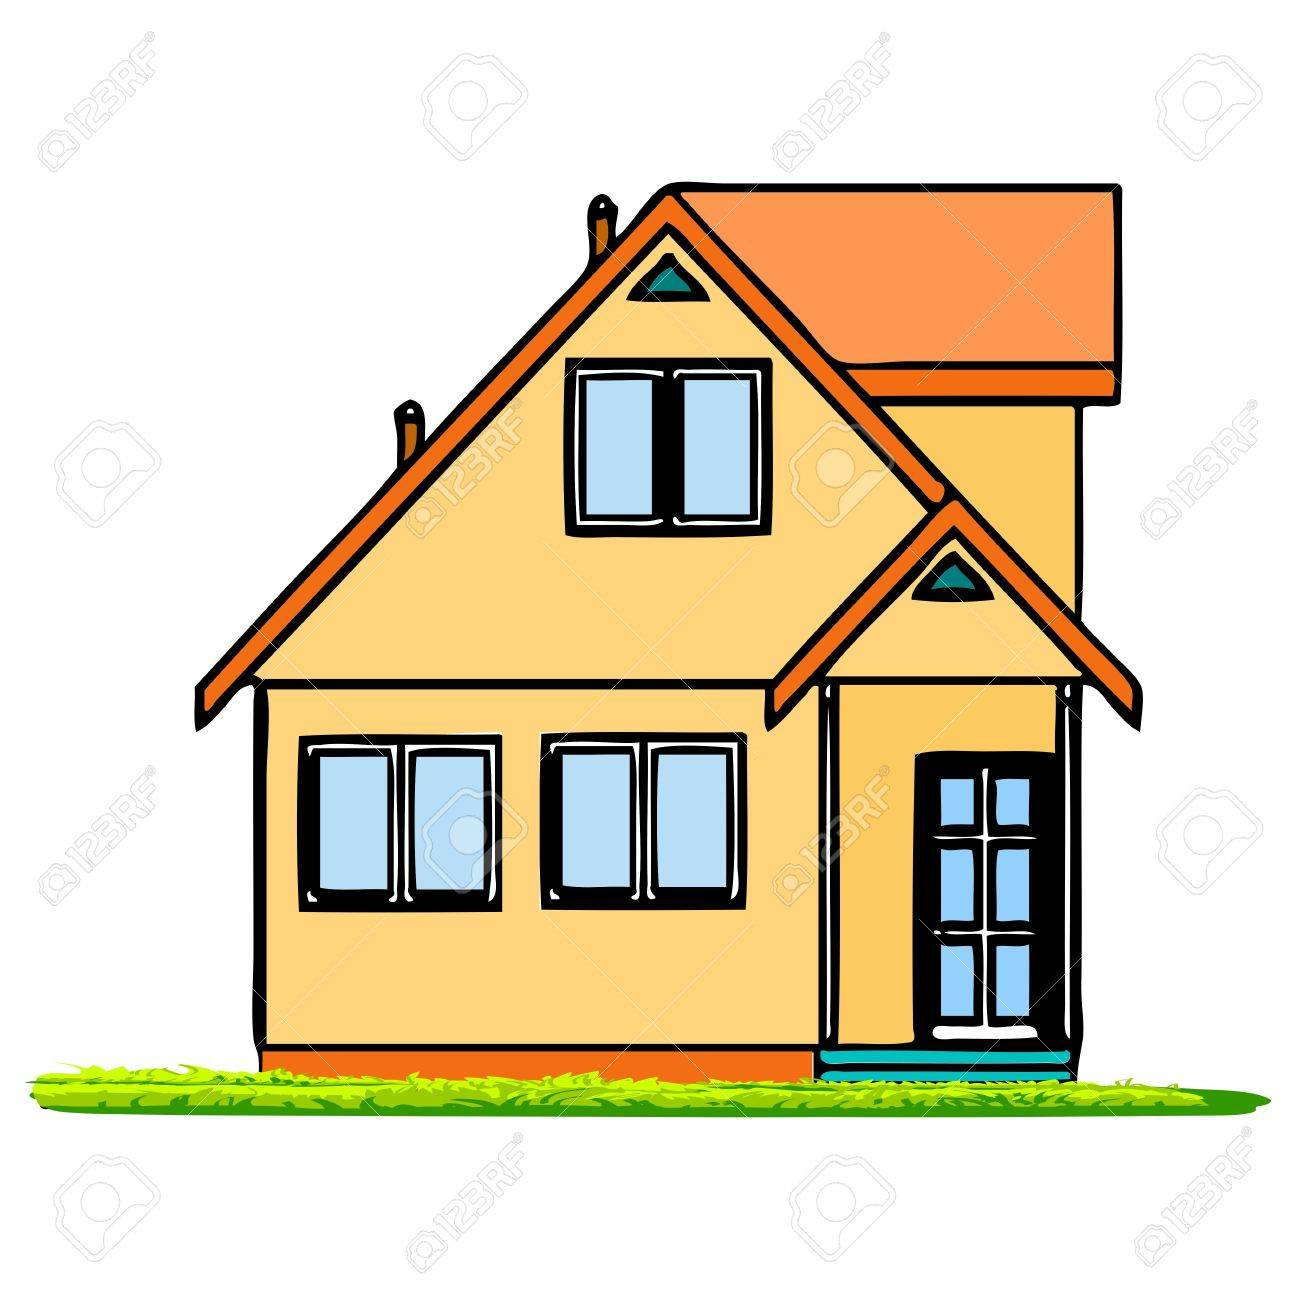 House - vector Stock Vector - 13741519